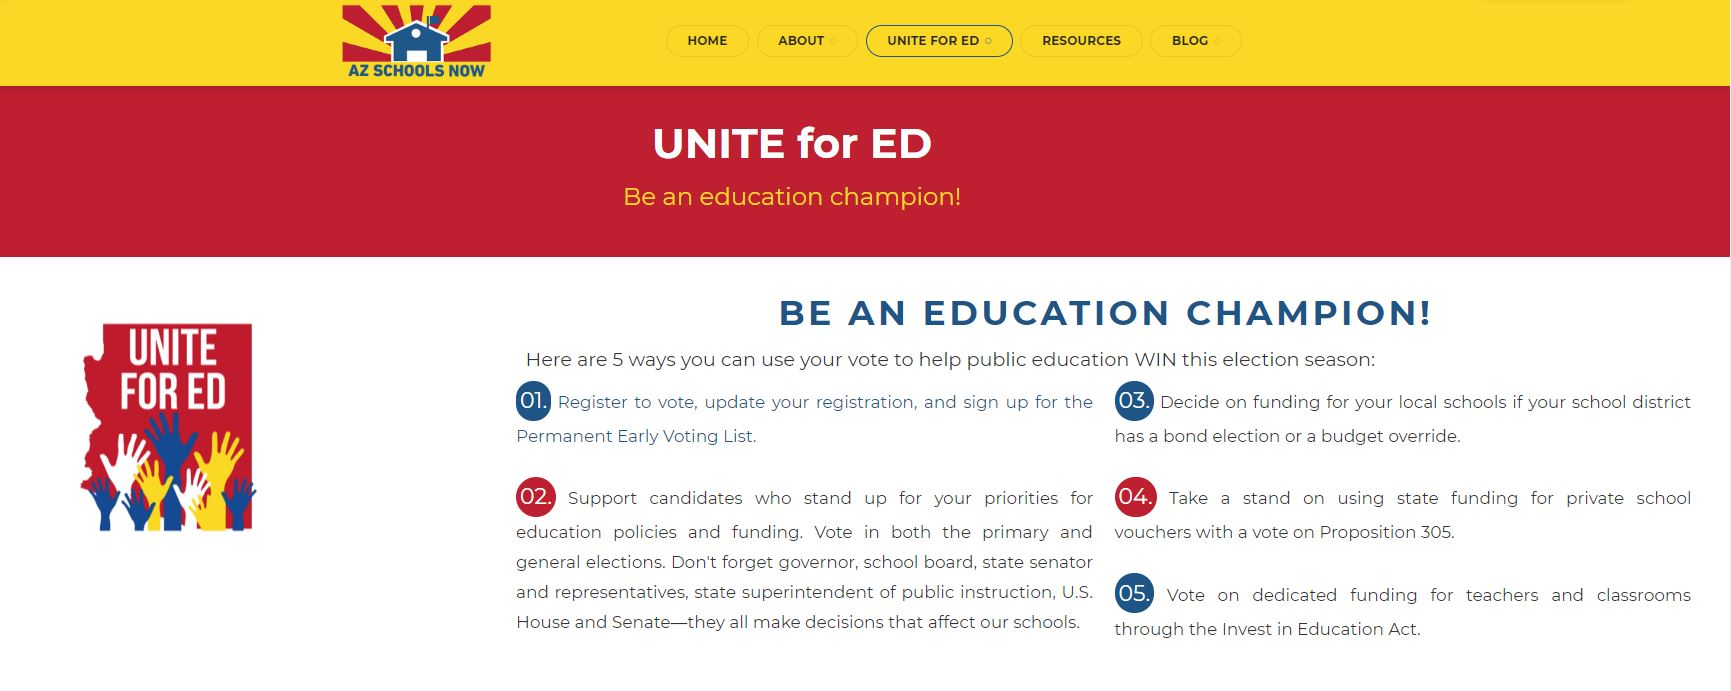 Voting records show legislators' levels of support for public education AZ-Schools-Now-Unite-for-ED